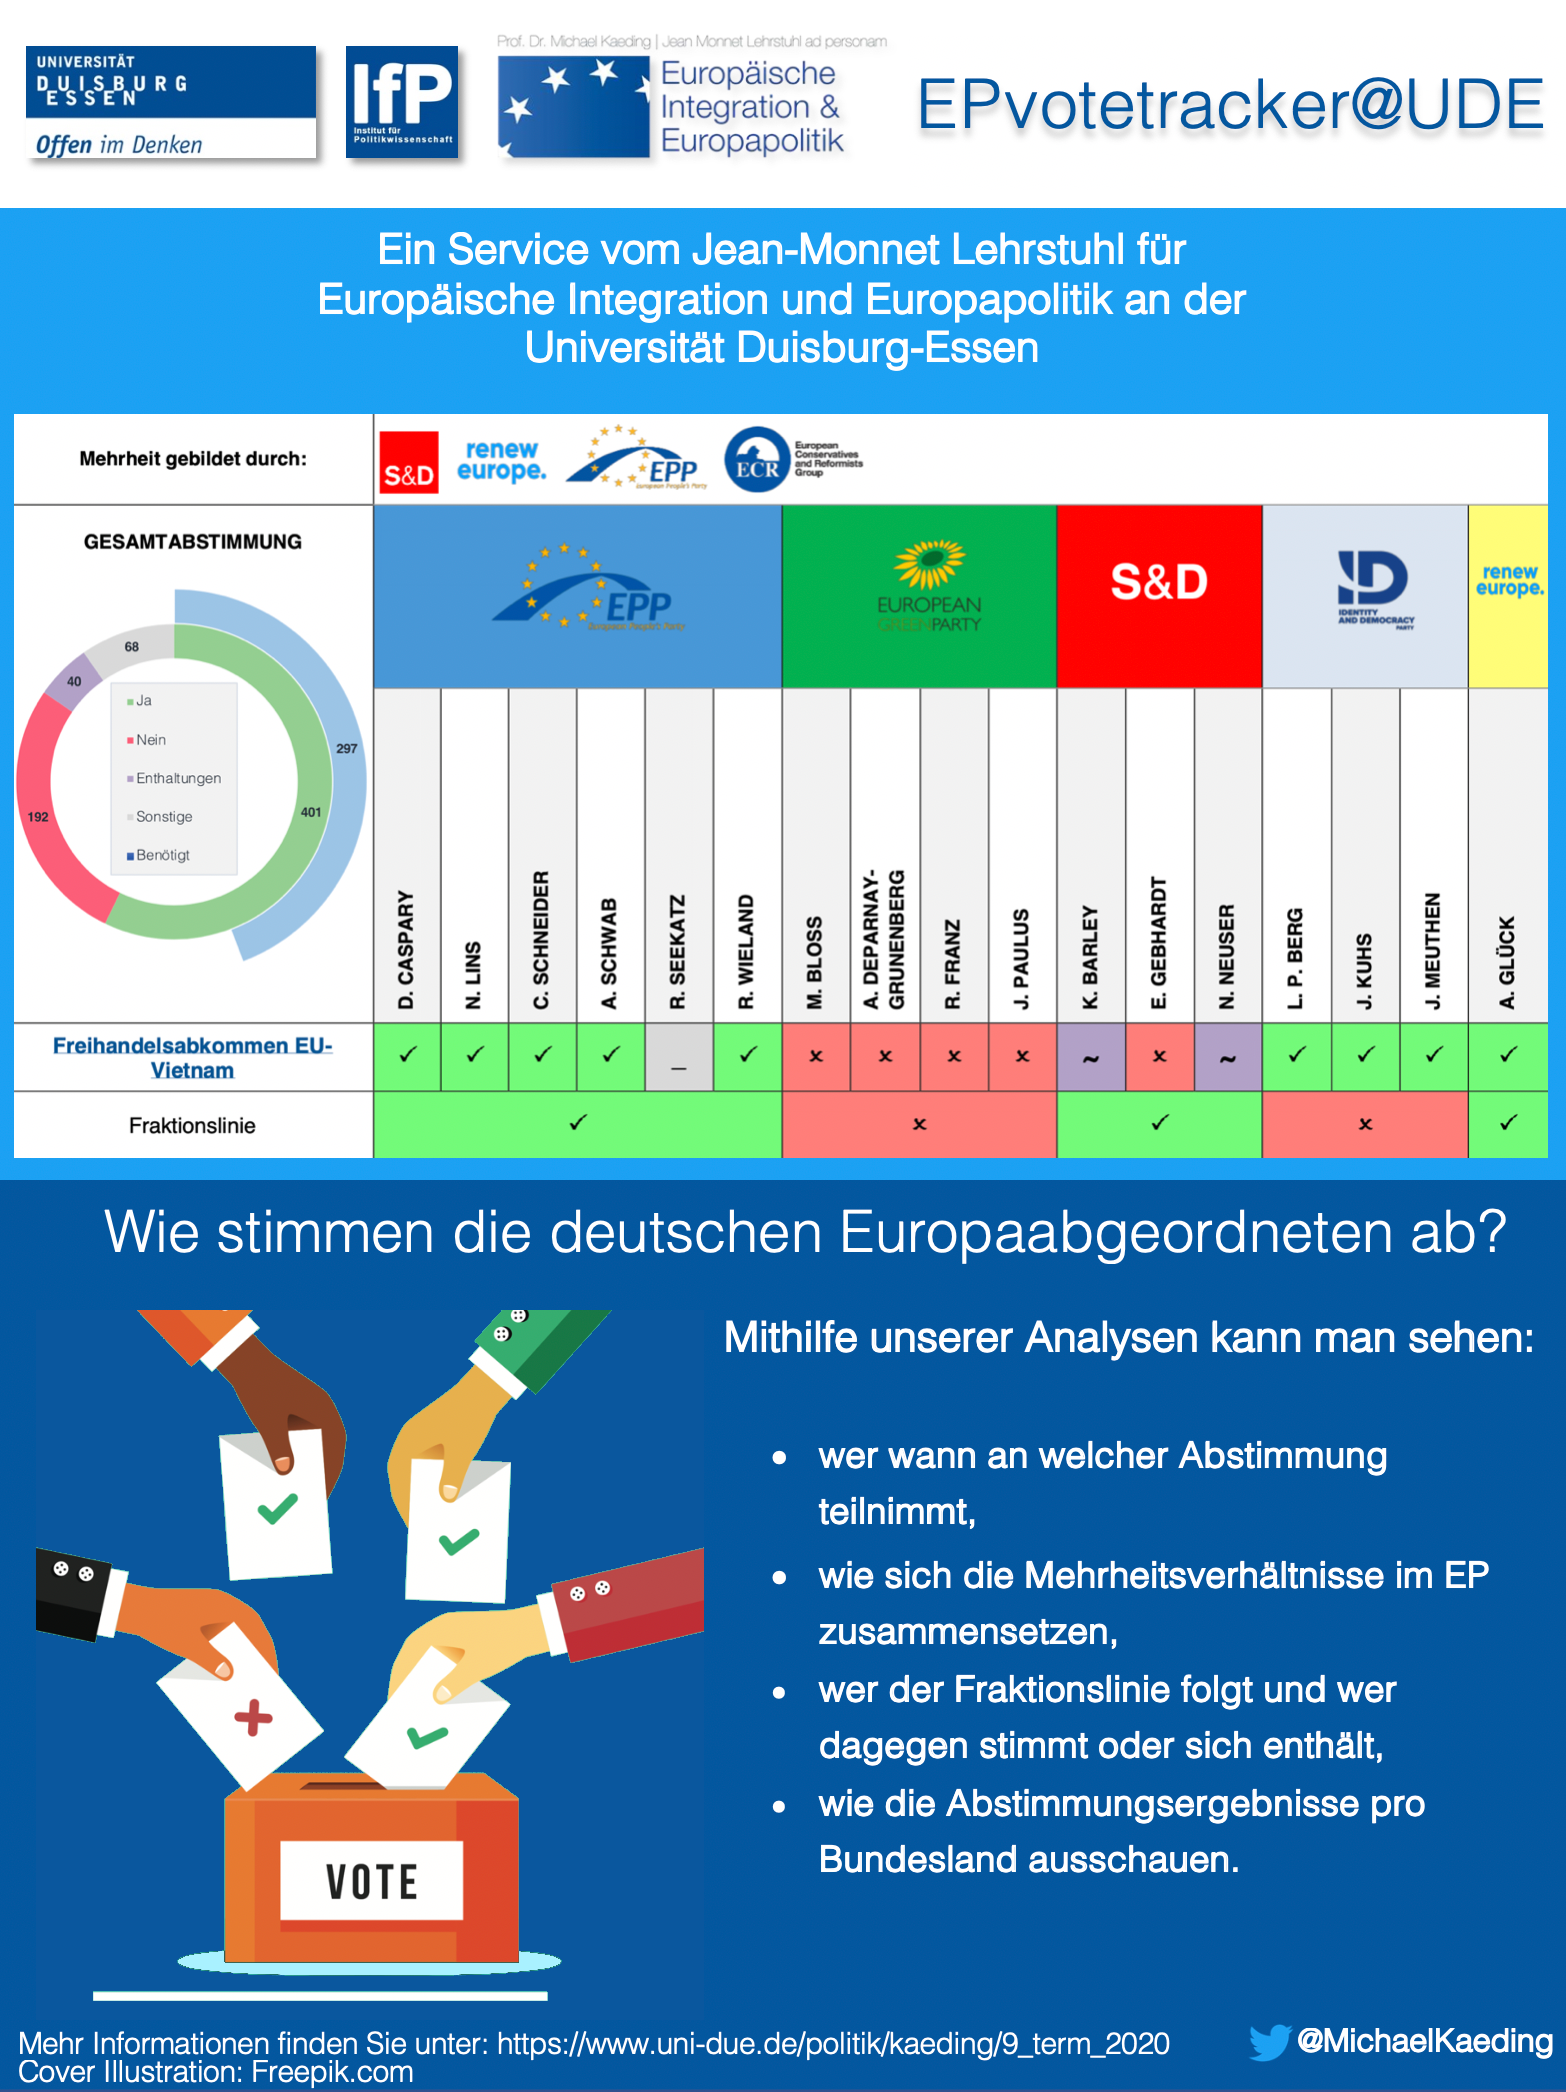 Factsheet Epvotetrackerl